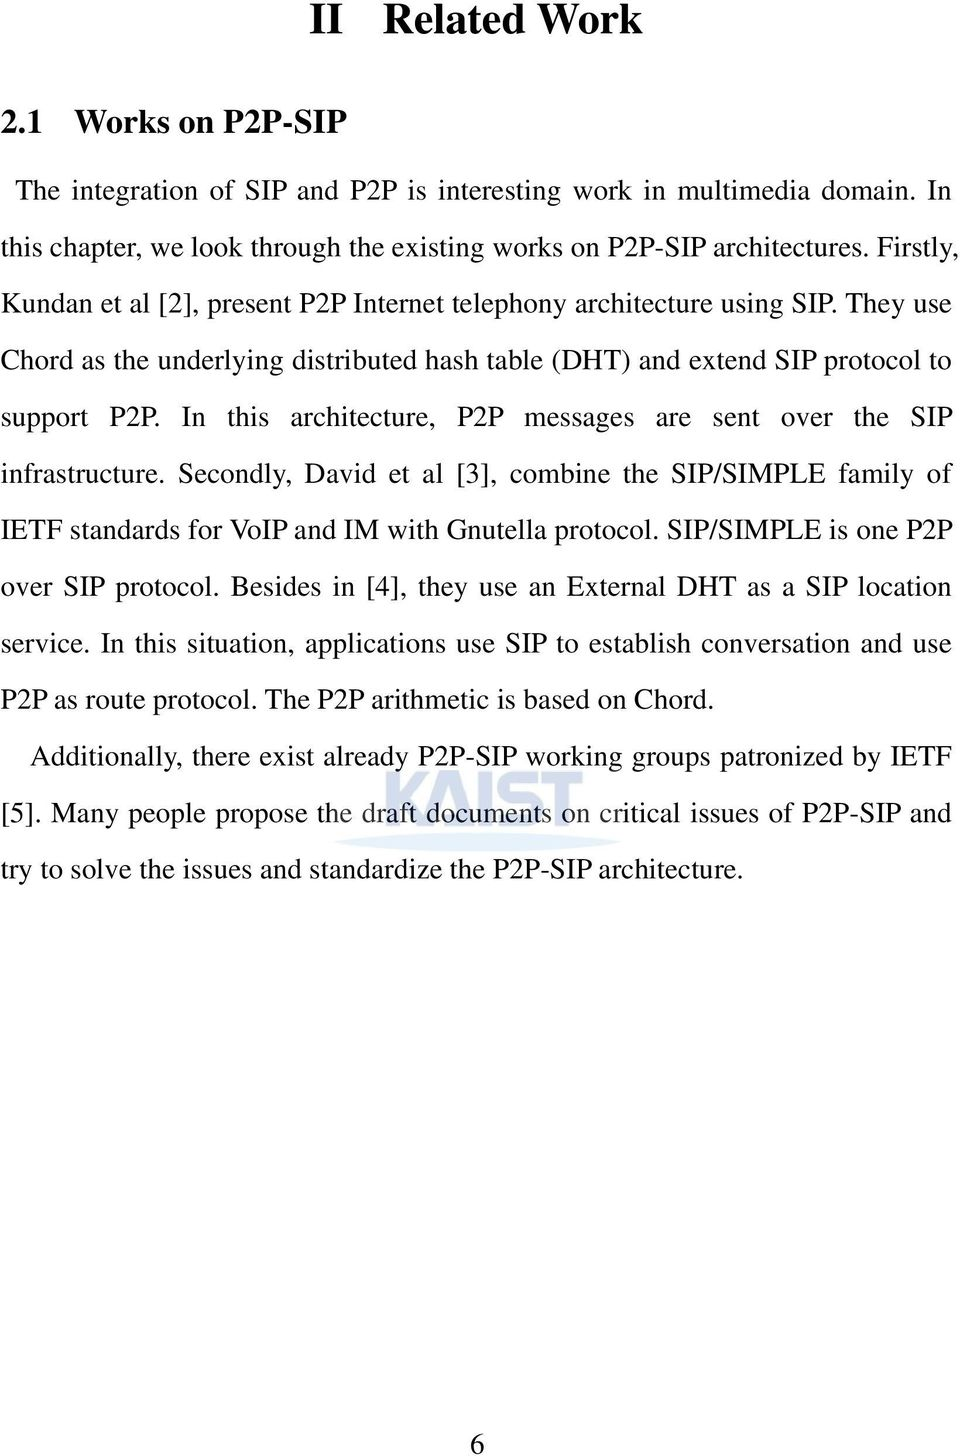 In this architecture, P2P messages are sent over the SIP infrastructure. Secondly, David et al [3], combine the SIP/SIMPLE family of IETF standards for VoIP and IM with Gnutella protocol.